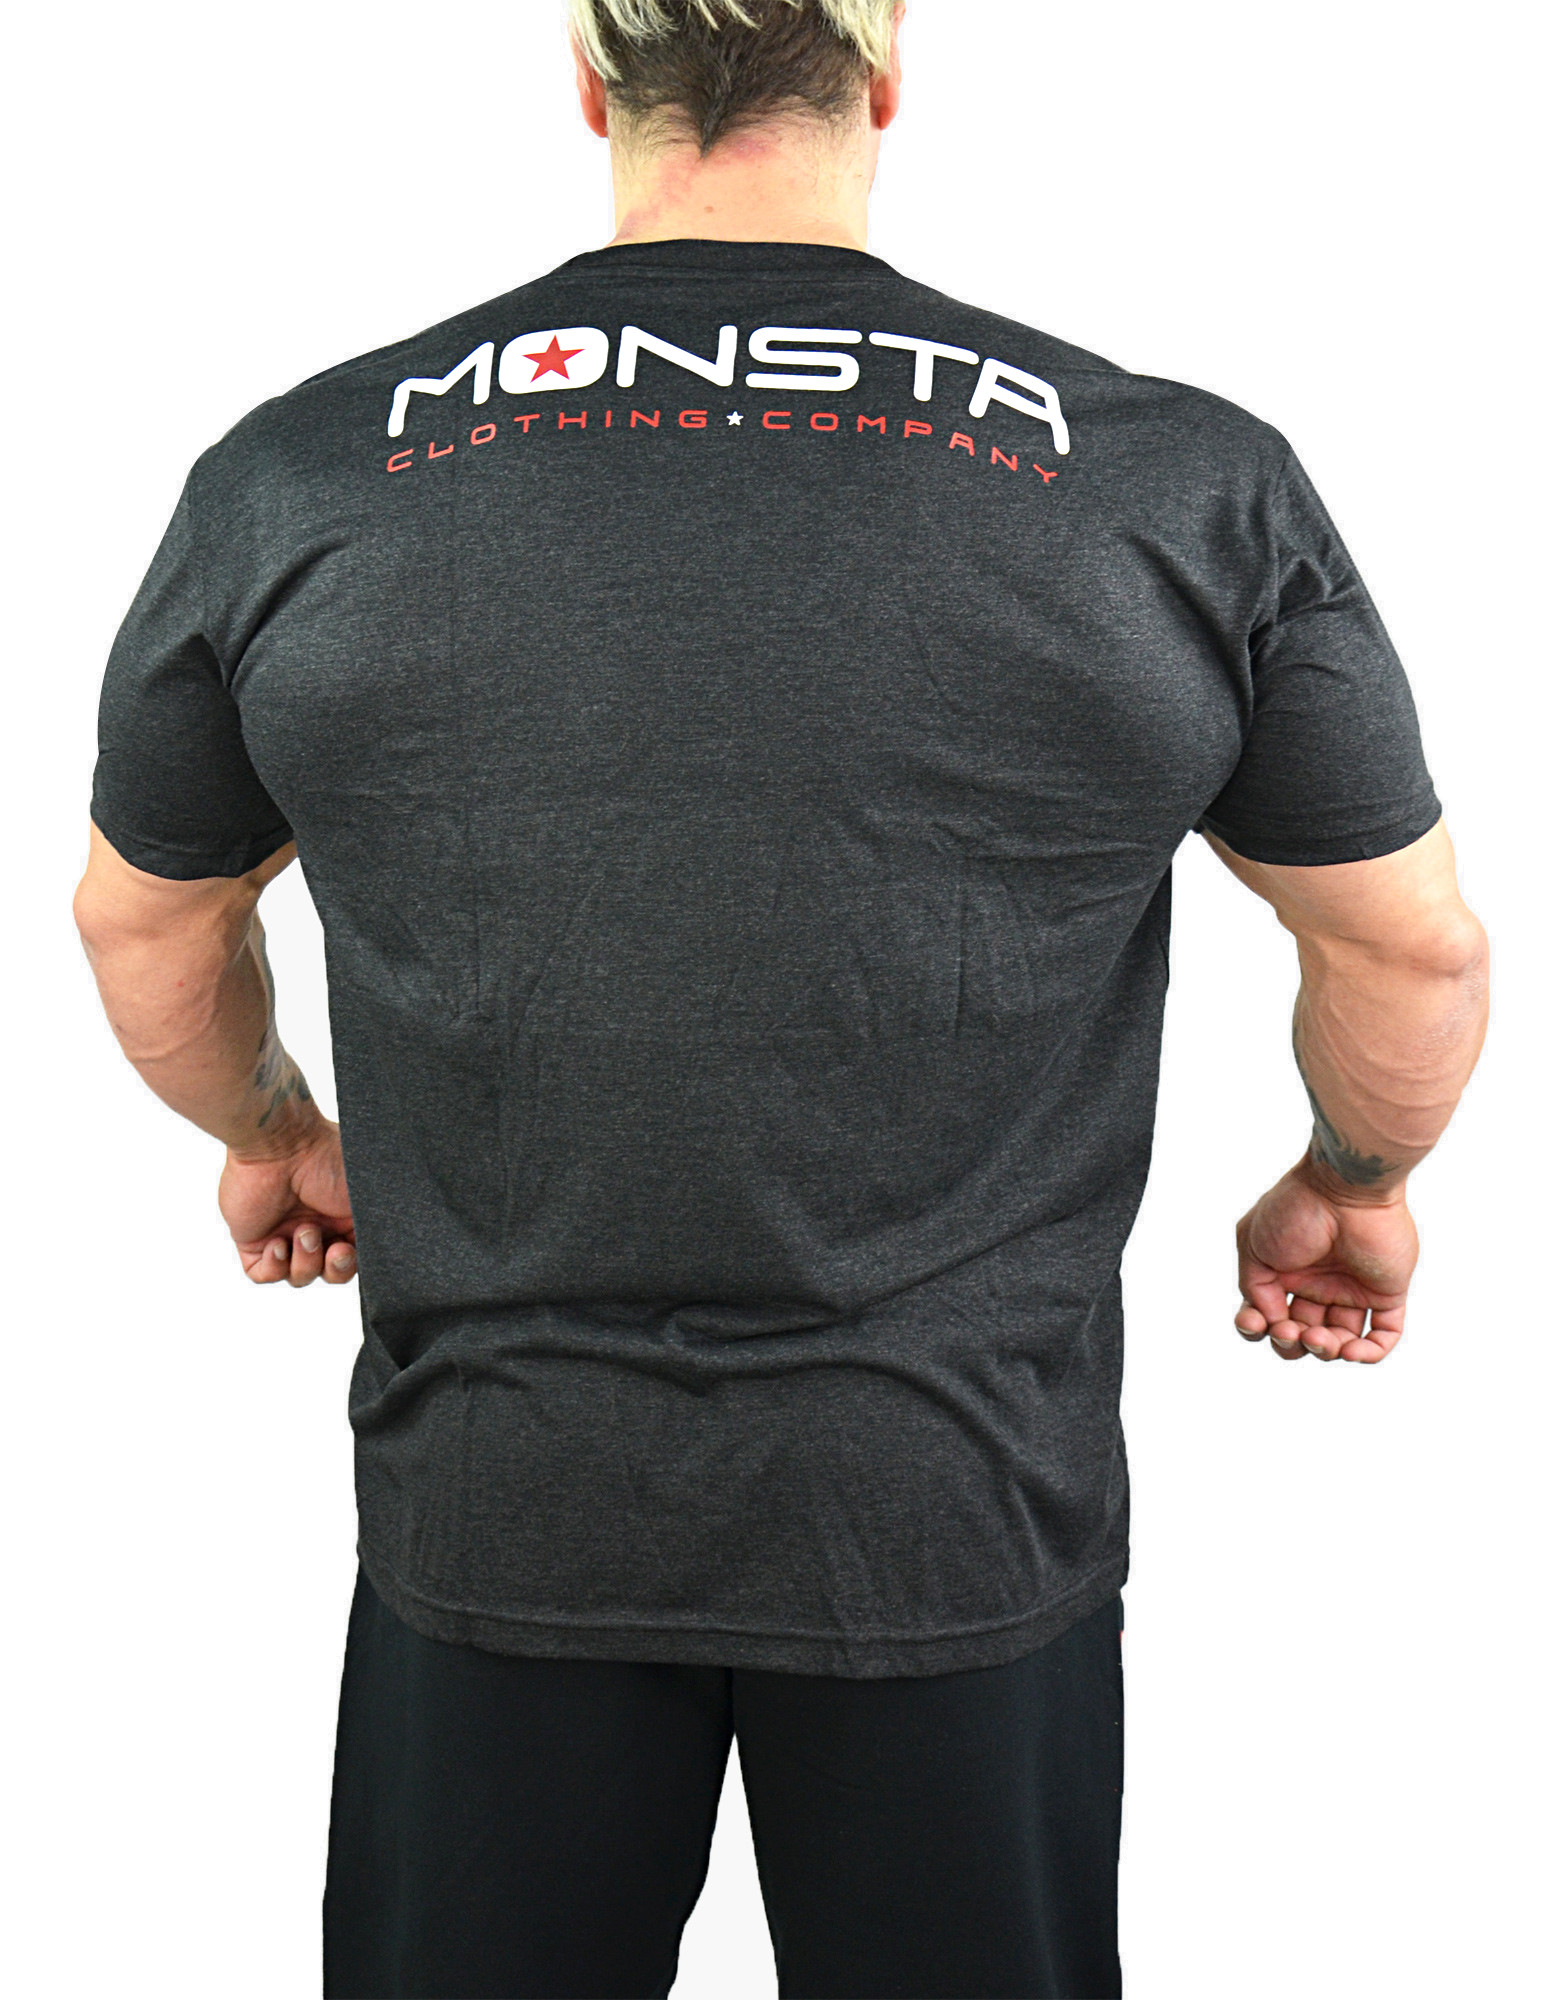 Bodybuilding tri blend by monsta clothing co colour black for Dress shirts for bodybuilders